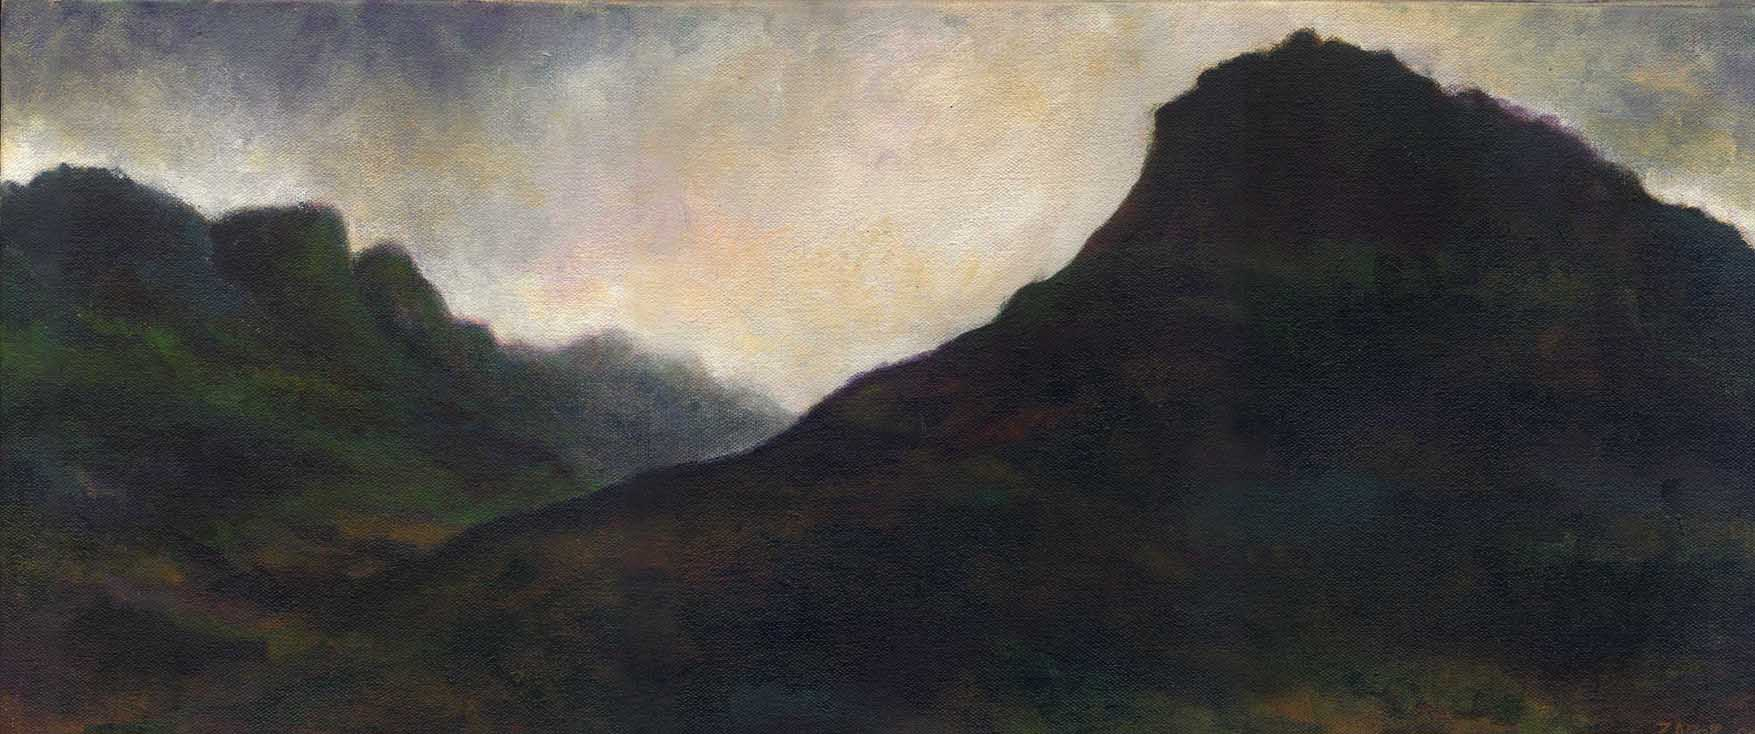 This is one of many landscapes I did of Glen Coe on a wonderful road trip through Scotland.